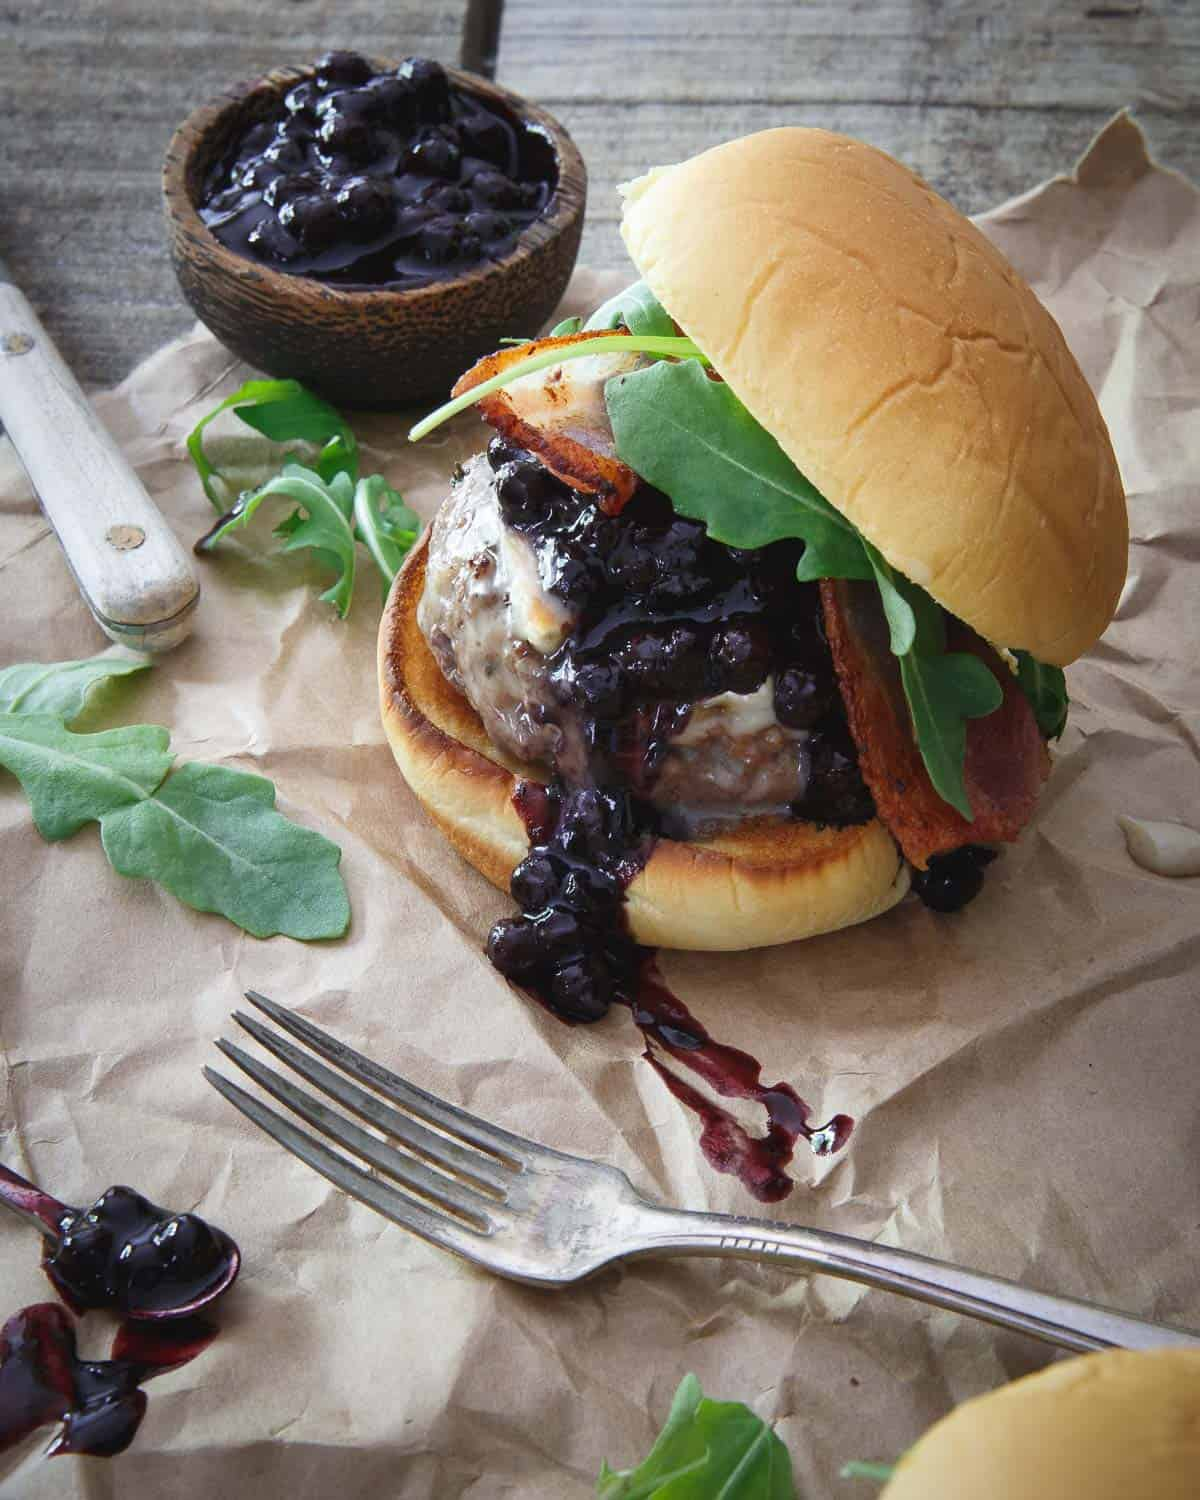 Sweet and tangy blueberry BBQ sauce gets slathered on this brie burger with crispy bacon and arugula.